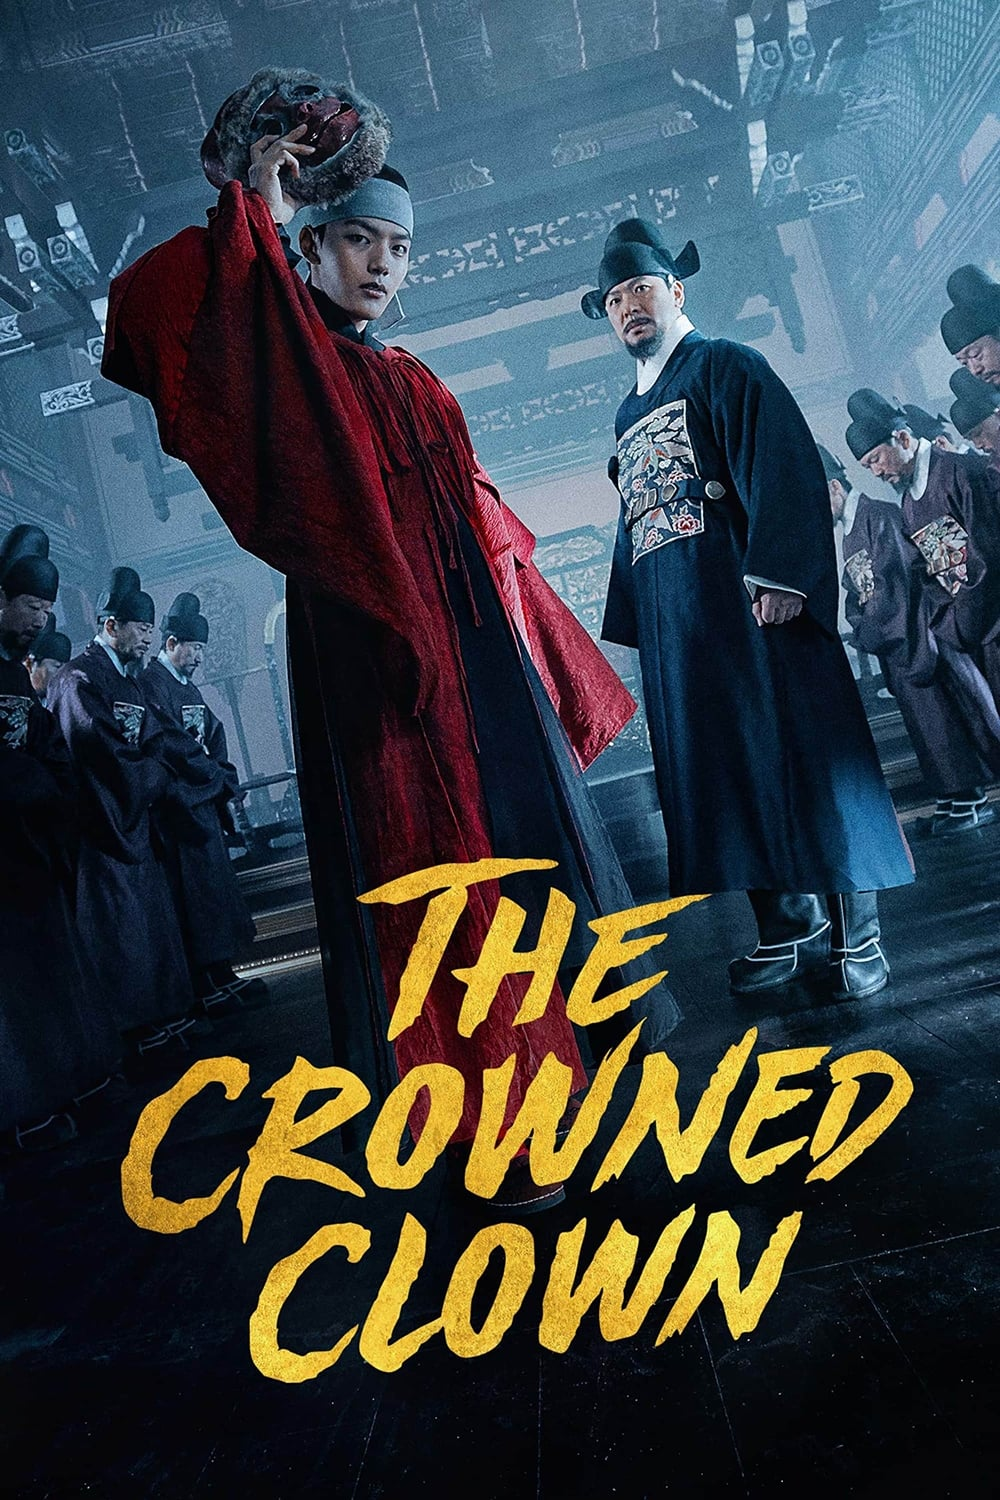 The Crowned Clown (2019)